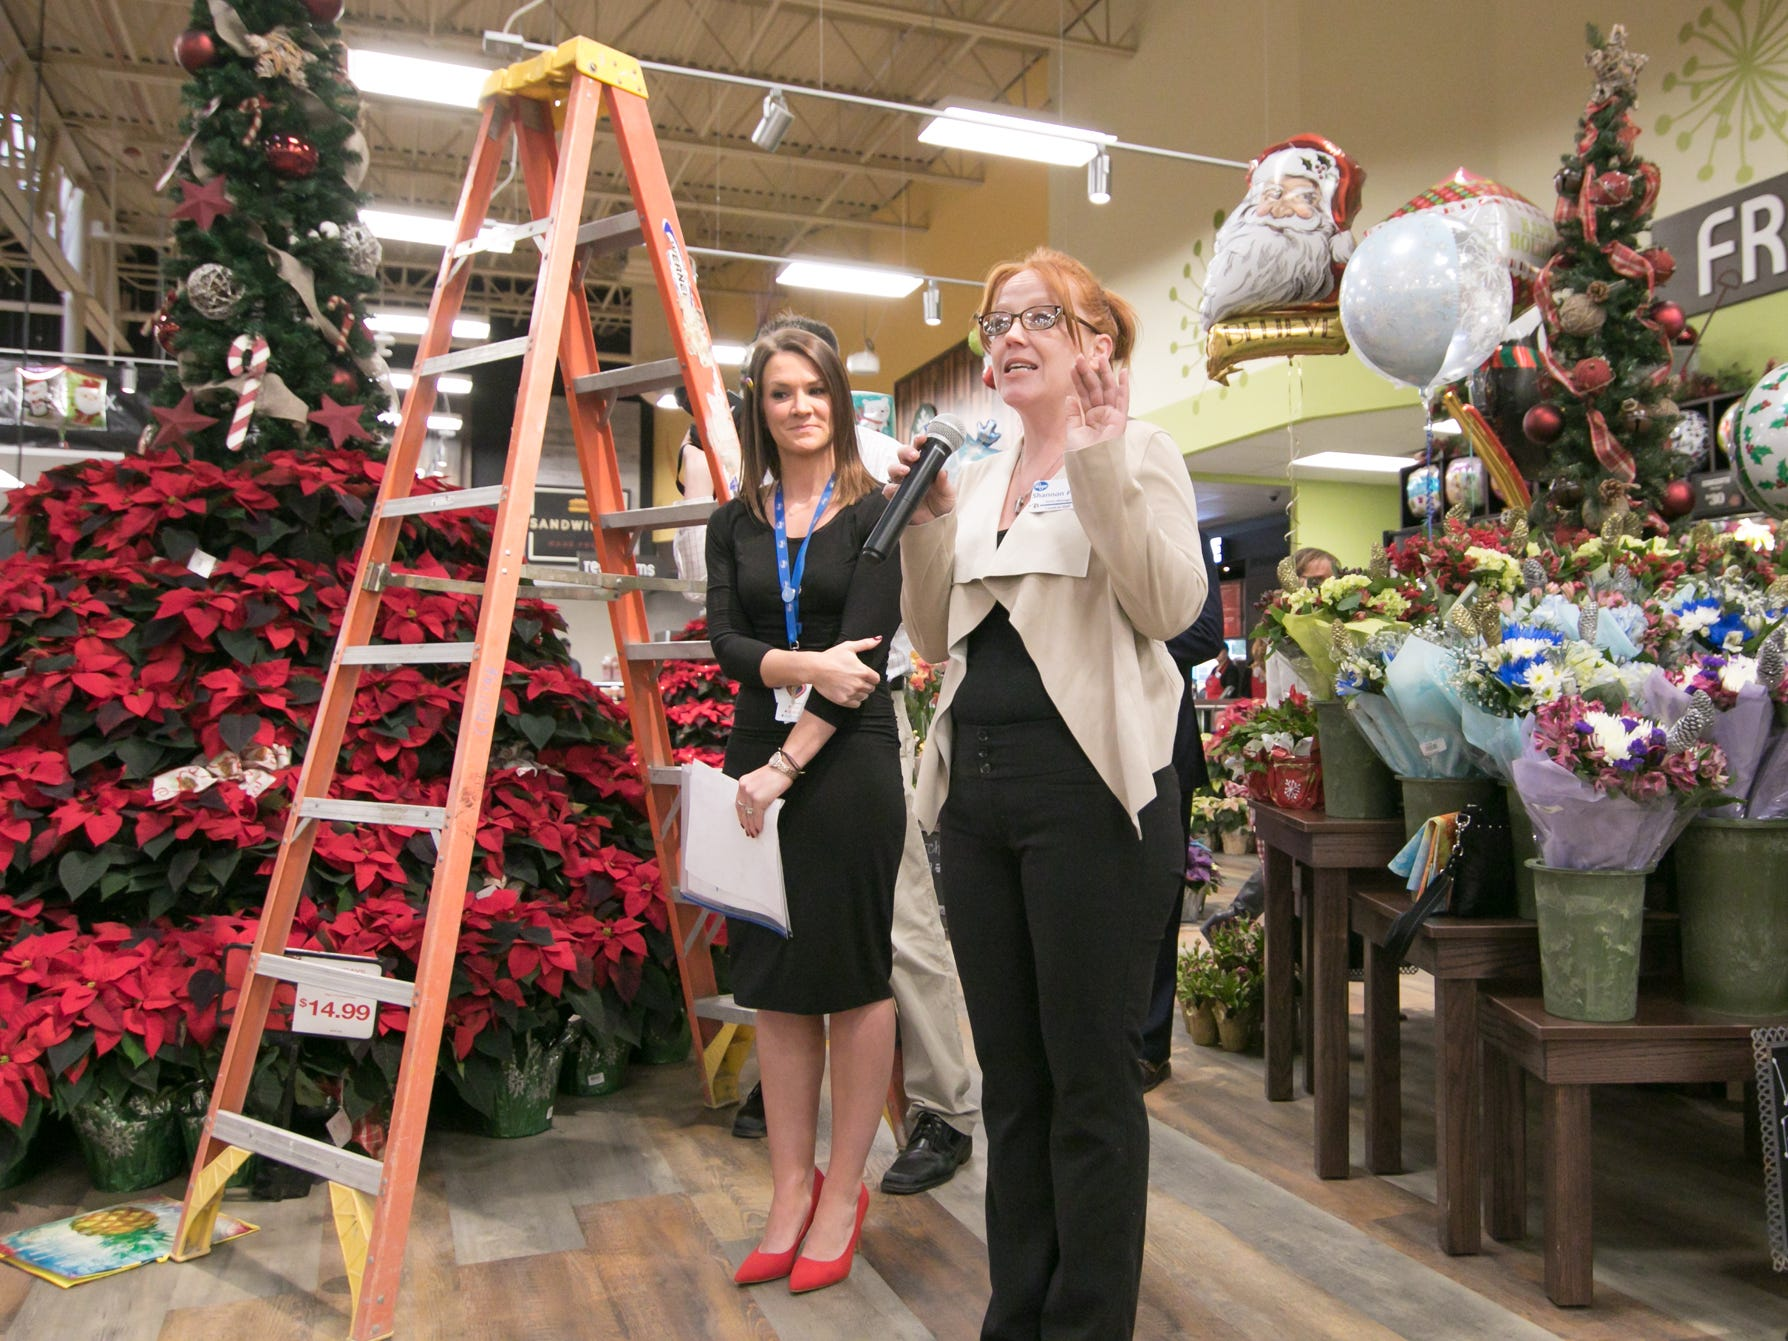 Brighton Kroger store manager Shannon Prieur, right, talks at the store's expansion celebration Wednesday, Dec. 5, 2018, with Kroger Co. of Michigan corporate affairs manager Rachel Hurst listening.